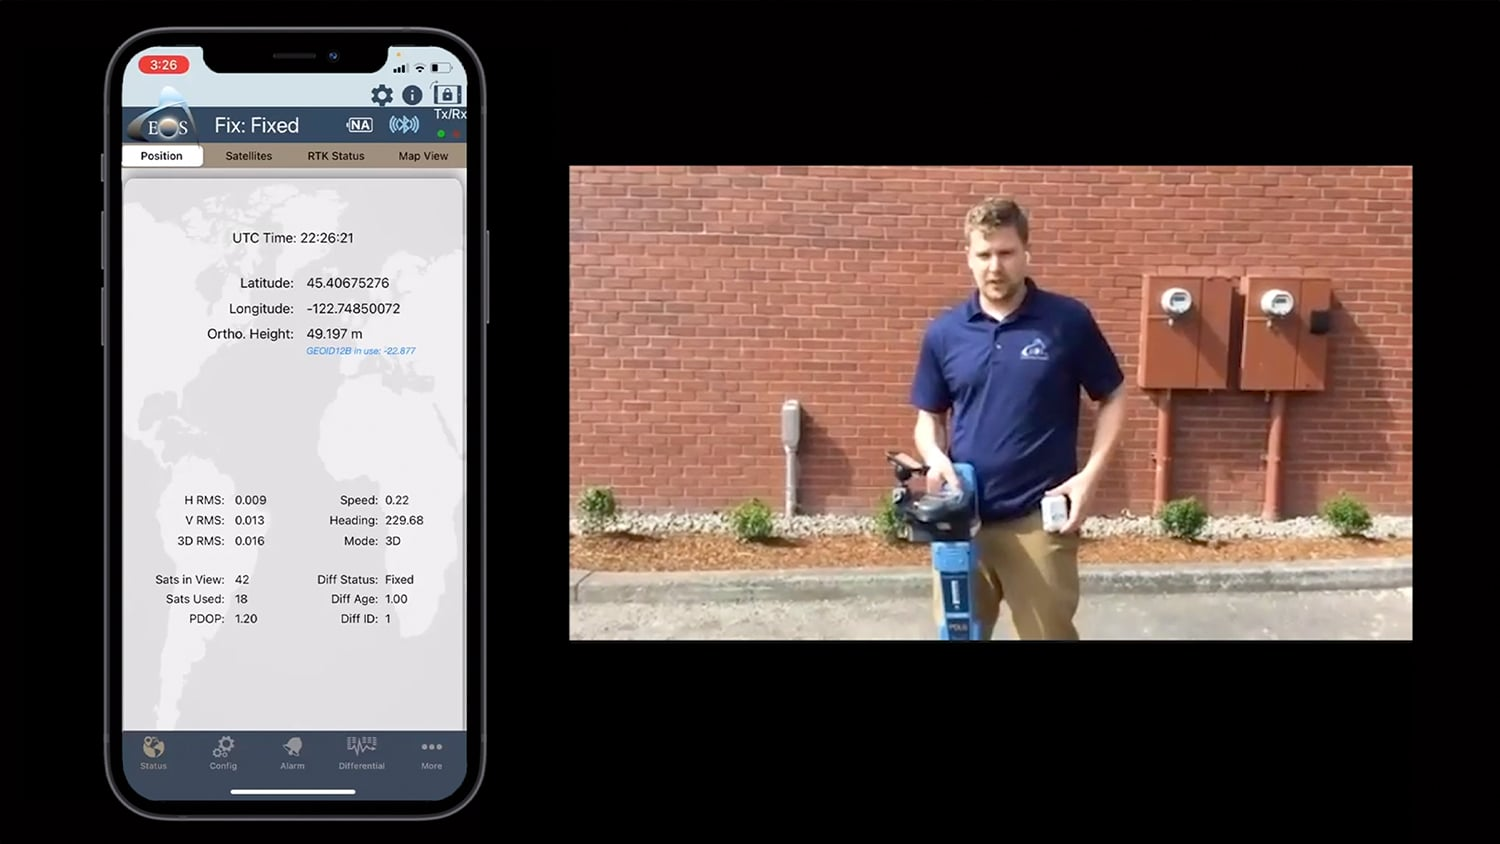 Eos Bridge: Demonstration of the Eos Locate solution using the Eos Bridge with an RD8100 locator, Arrow Gold GNSS receiver, and Esri's ArcGIS Field Maps mobile app